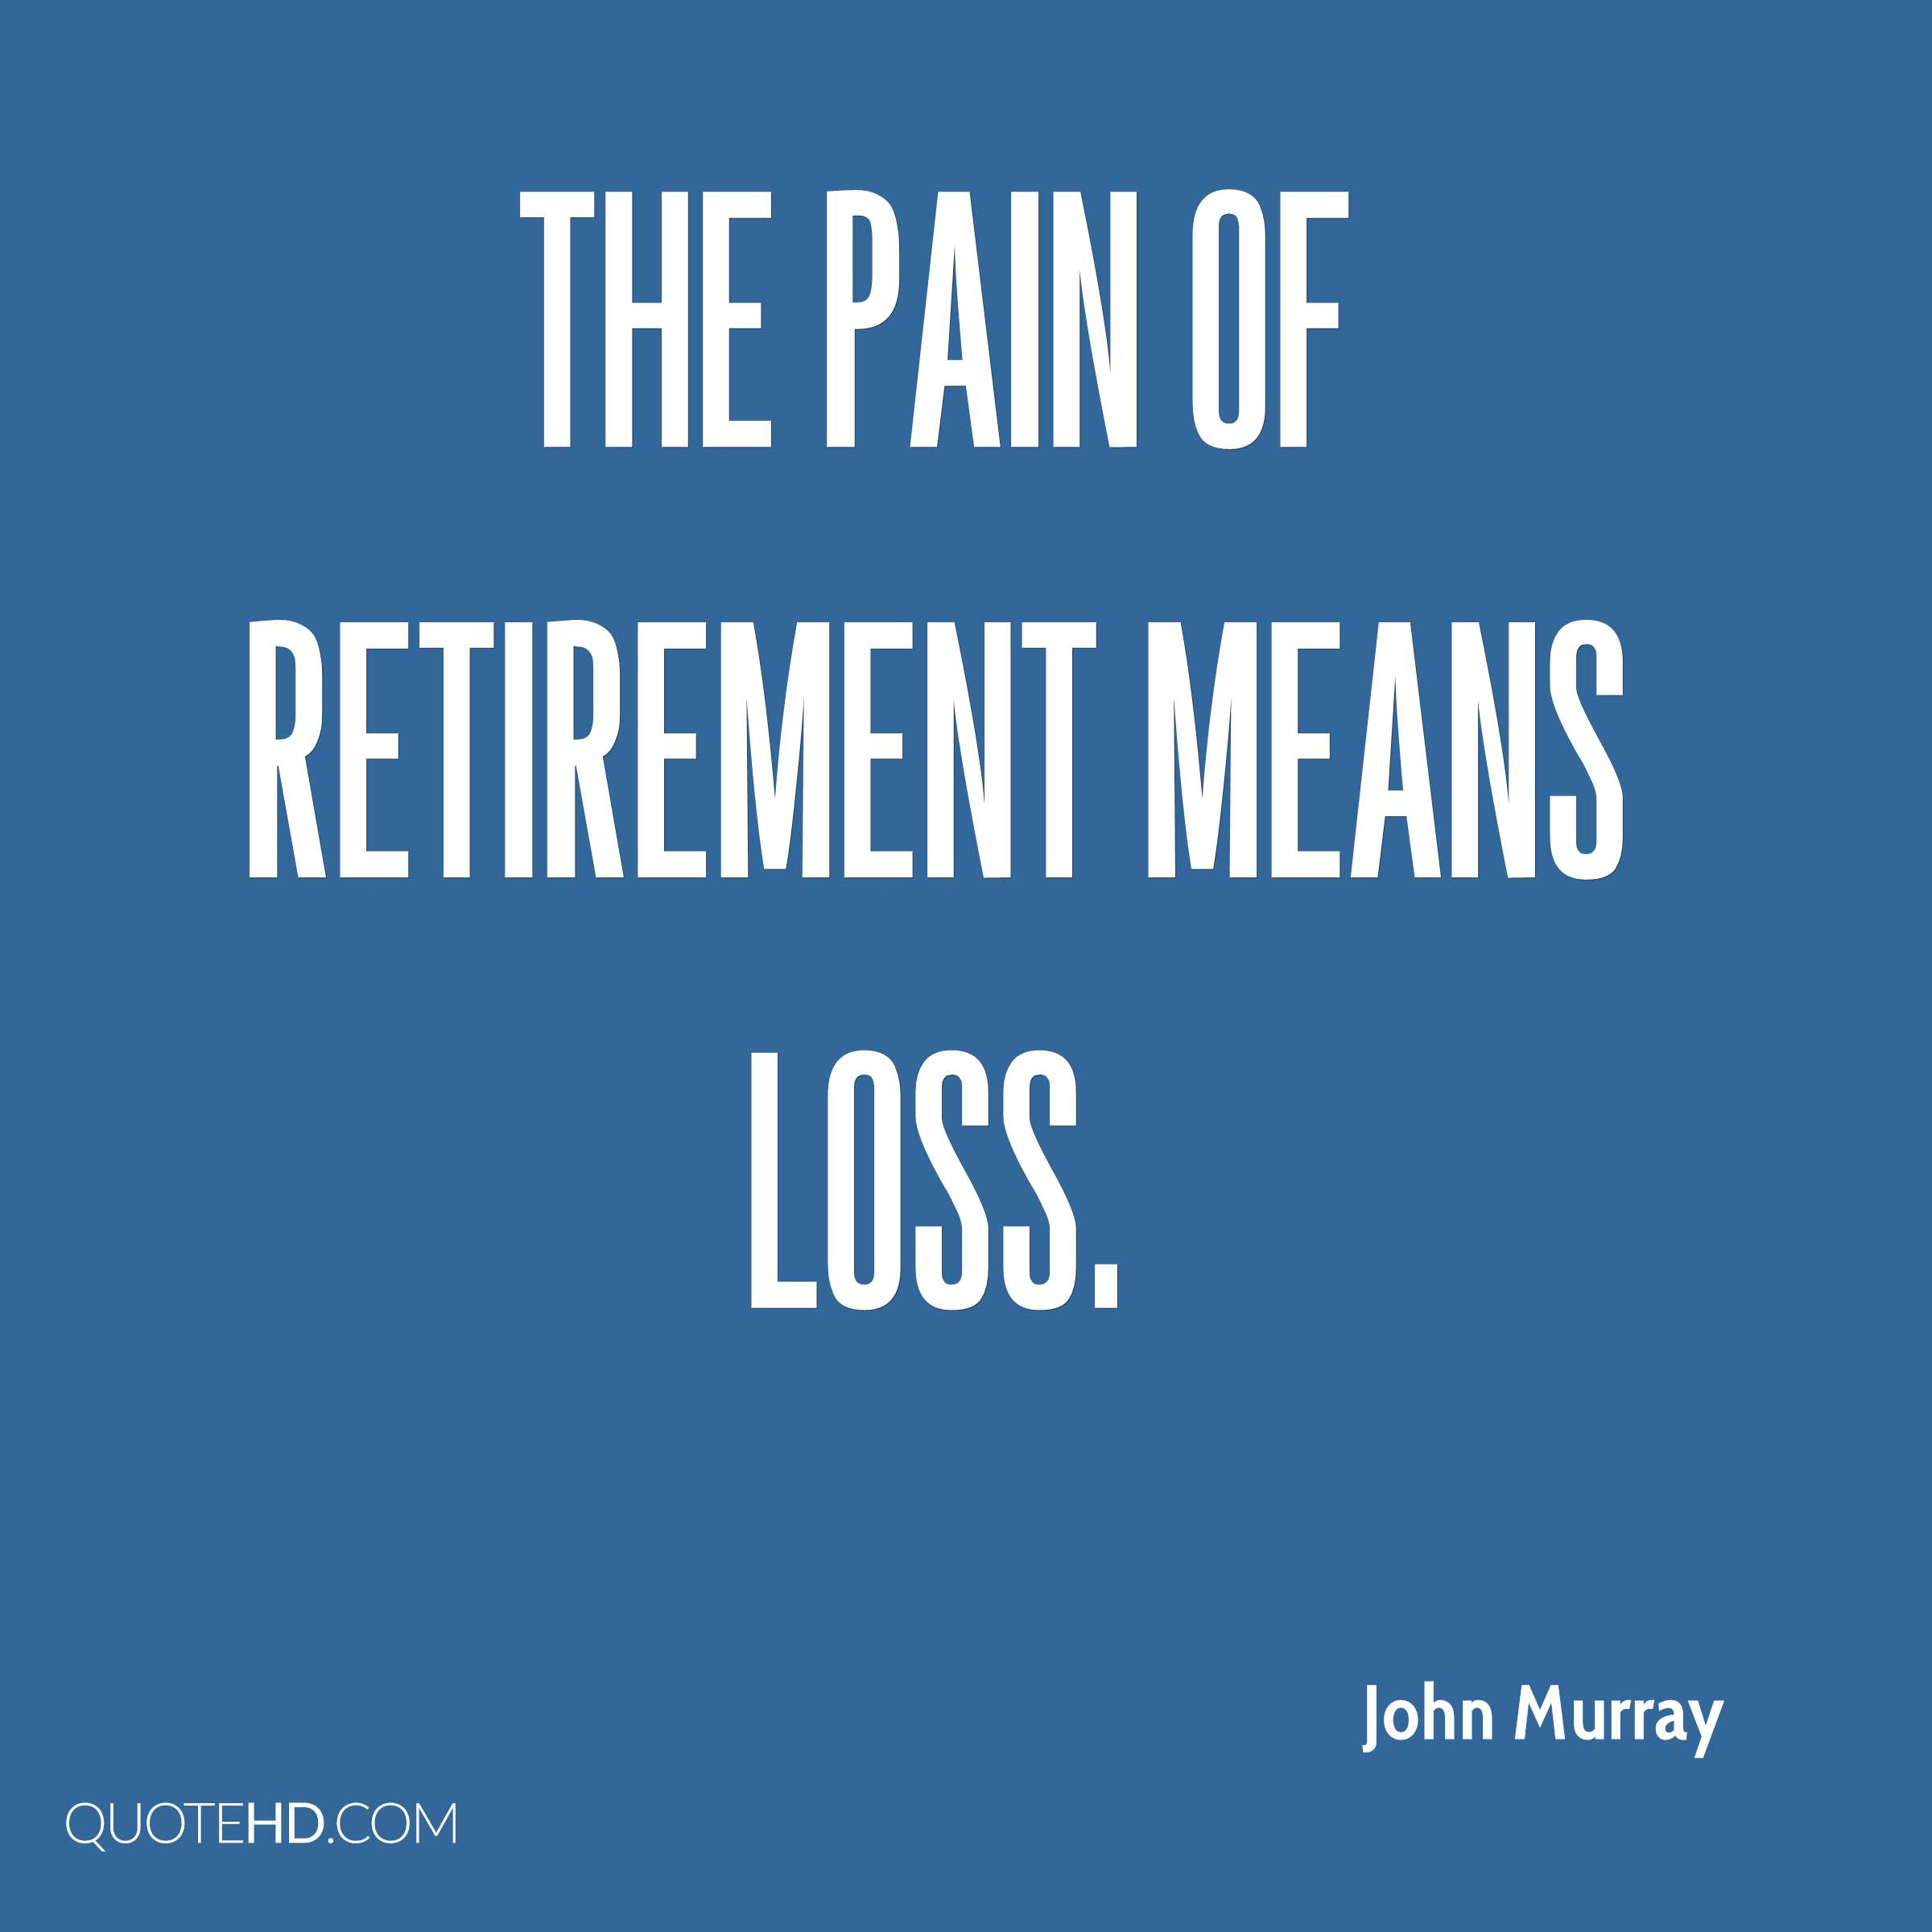 The pain of retirement means loss.